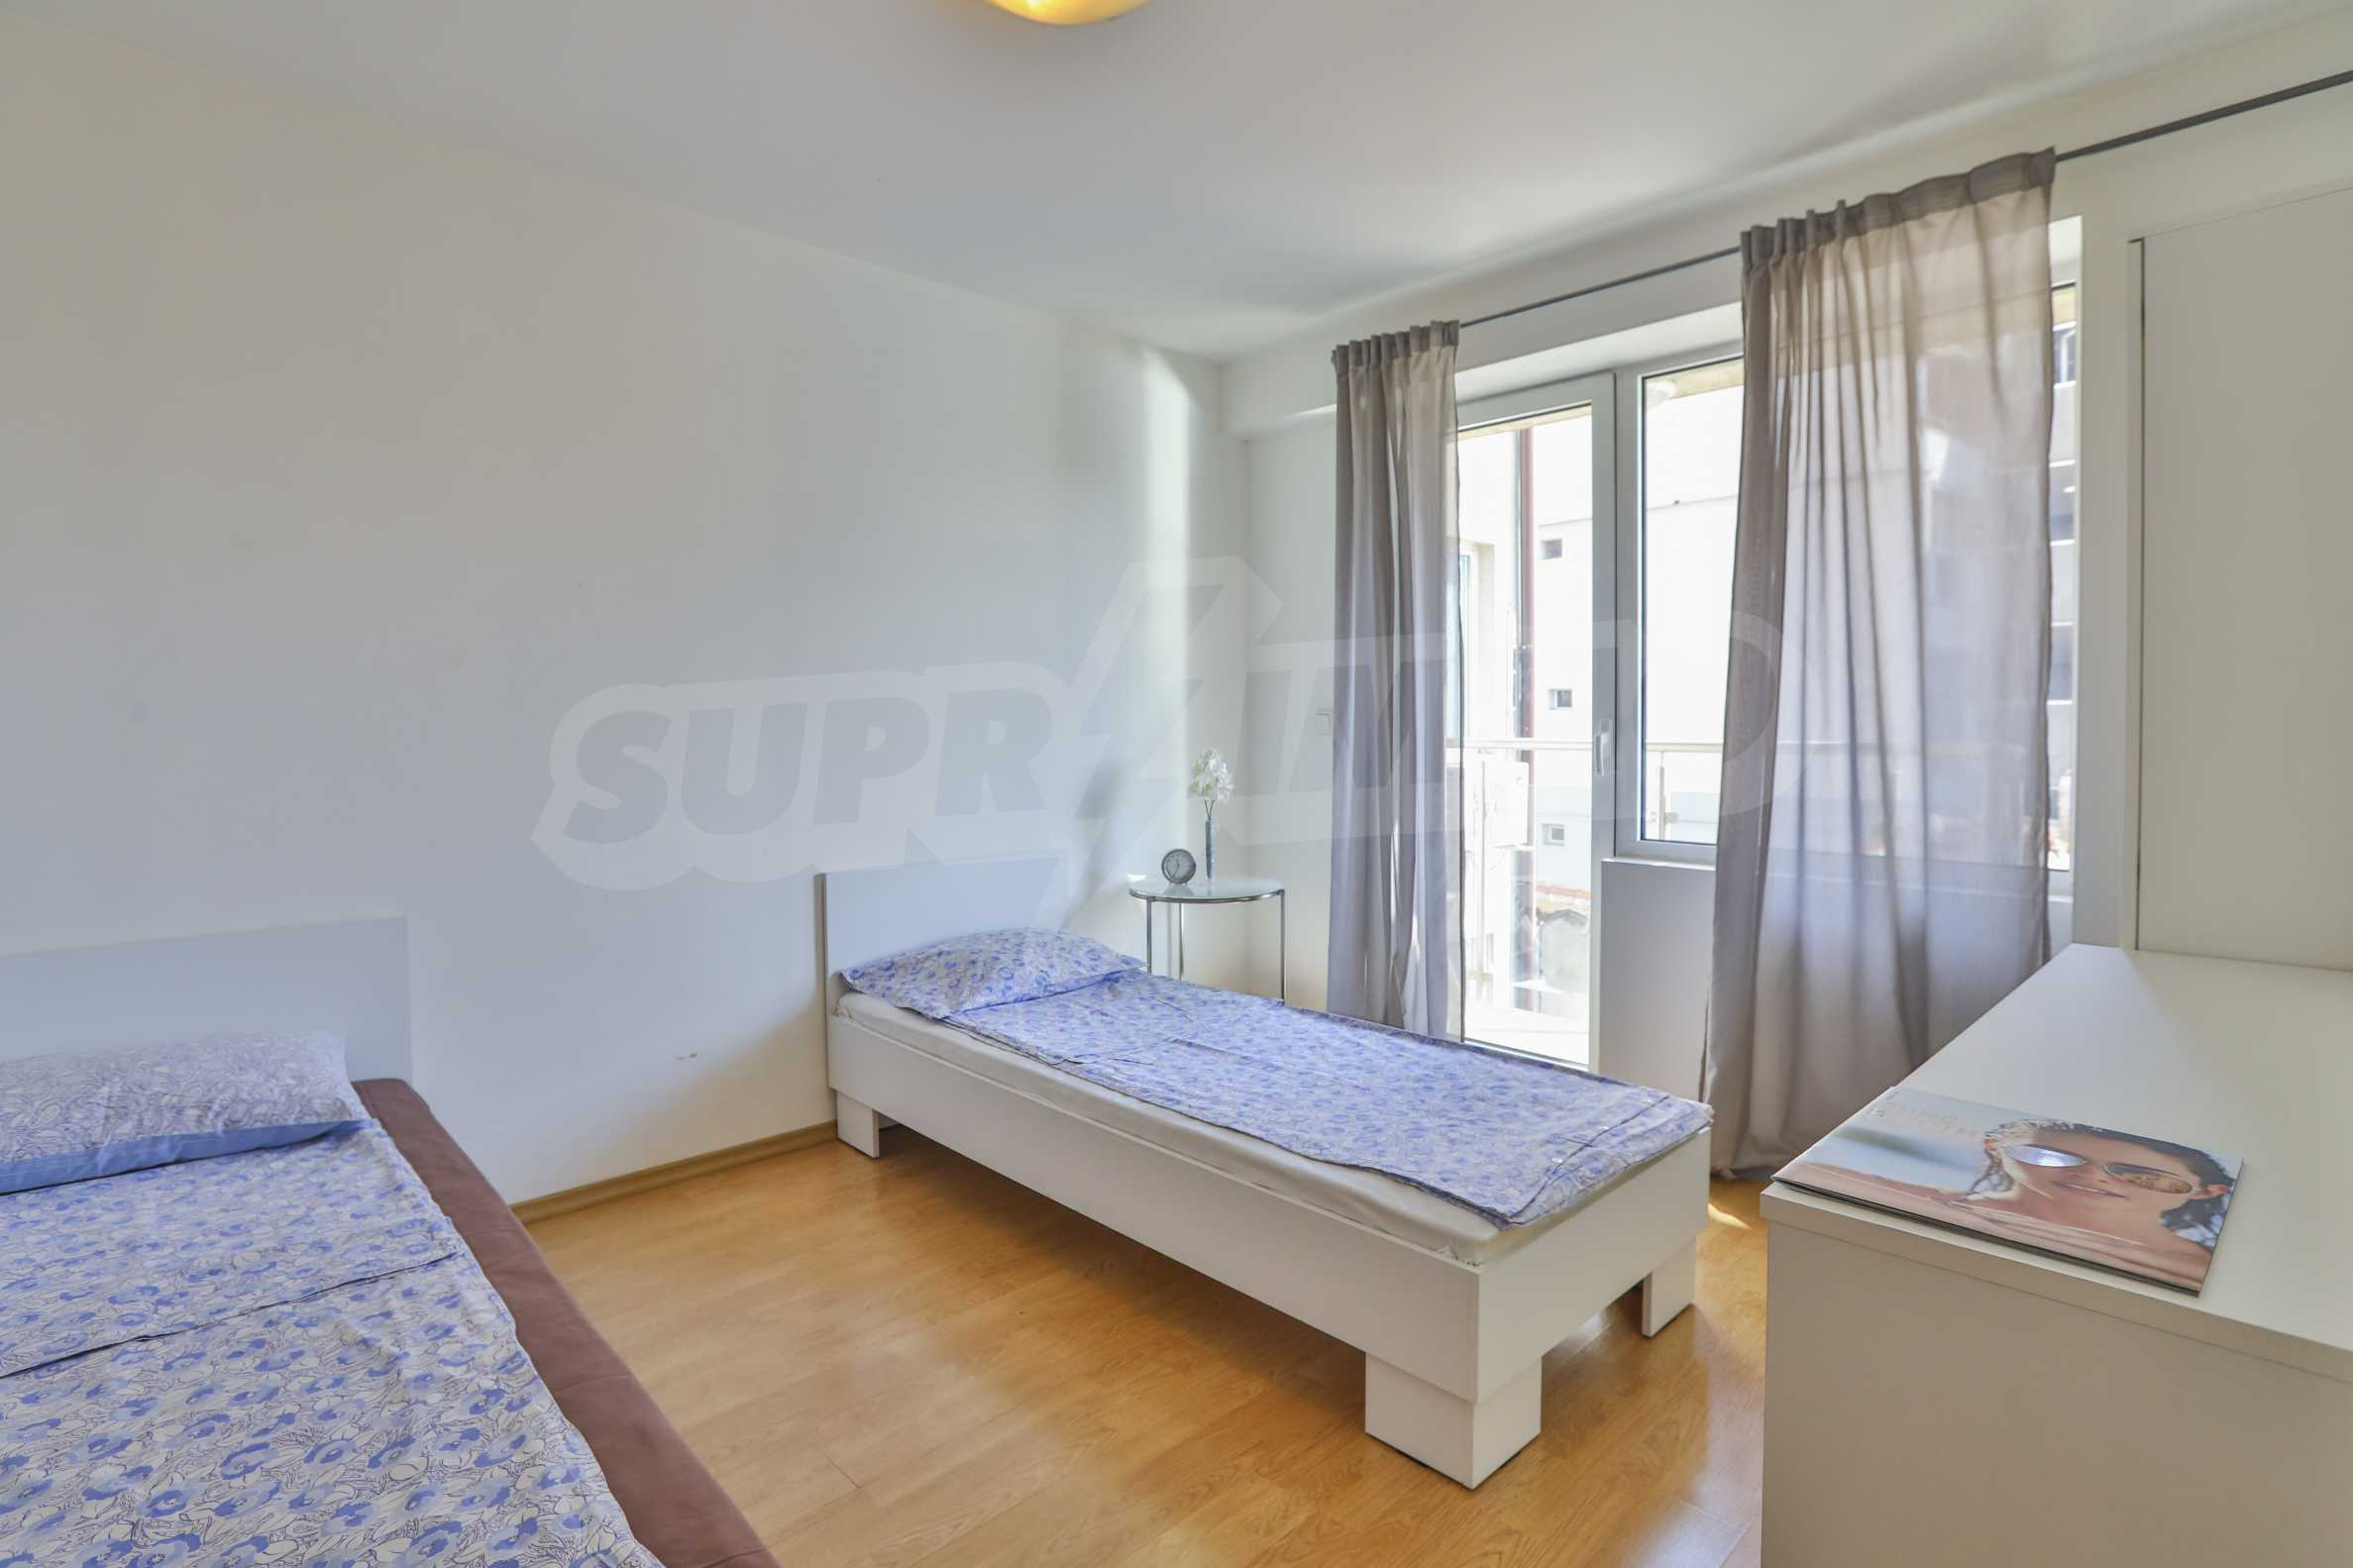 Two-bedroom apartment in the center with high rating on Airbnb 2